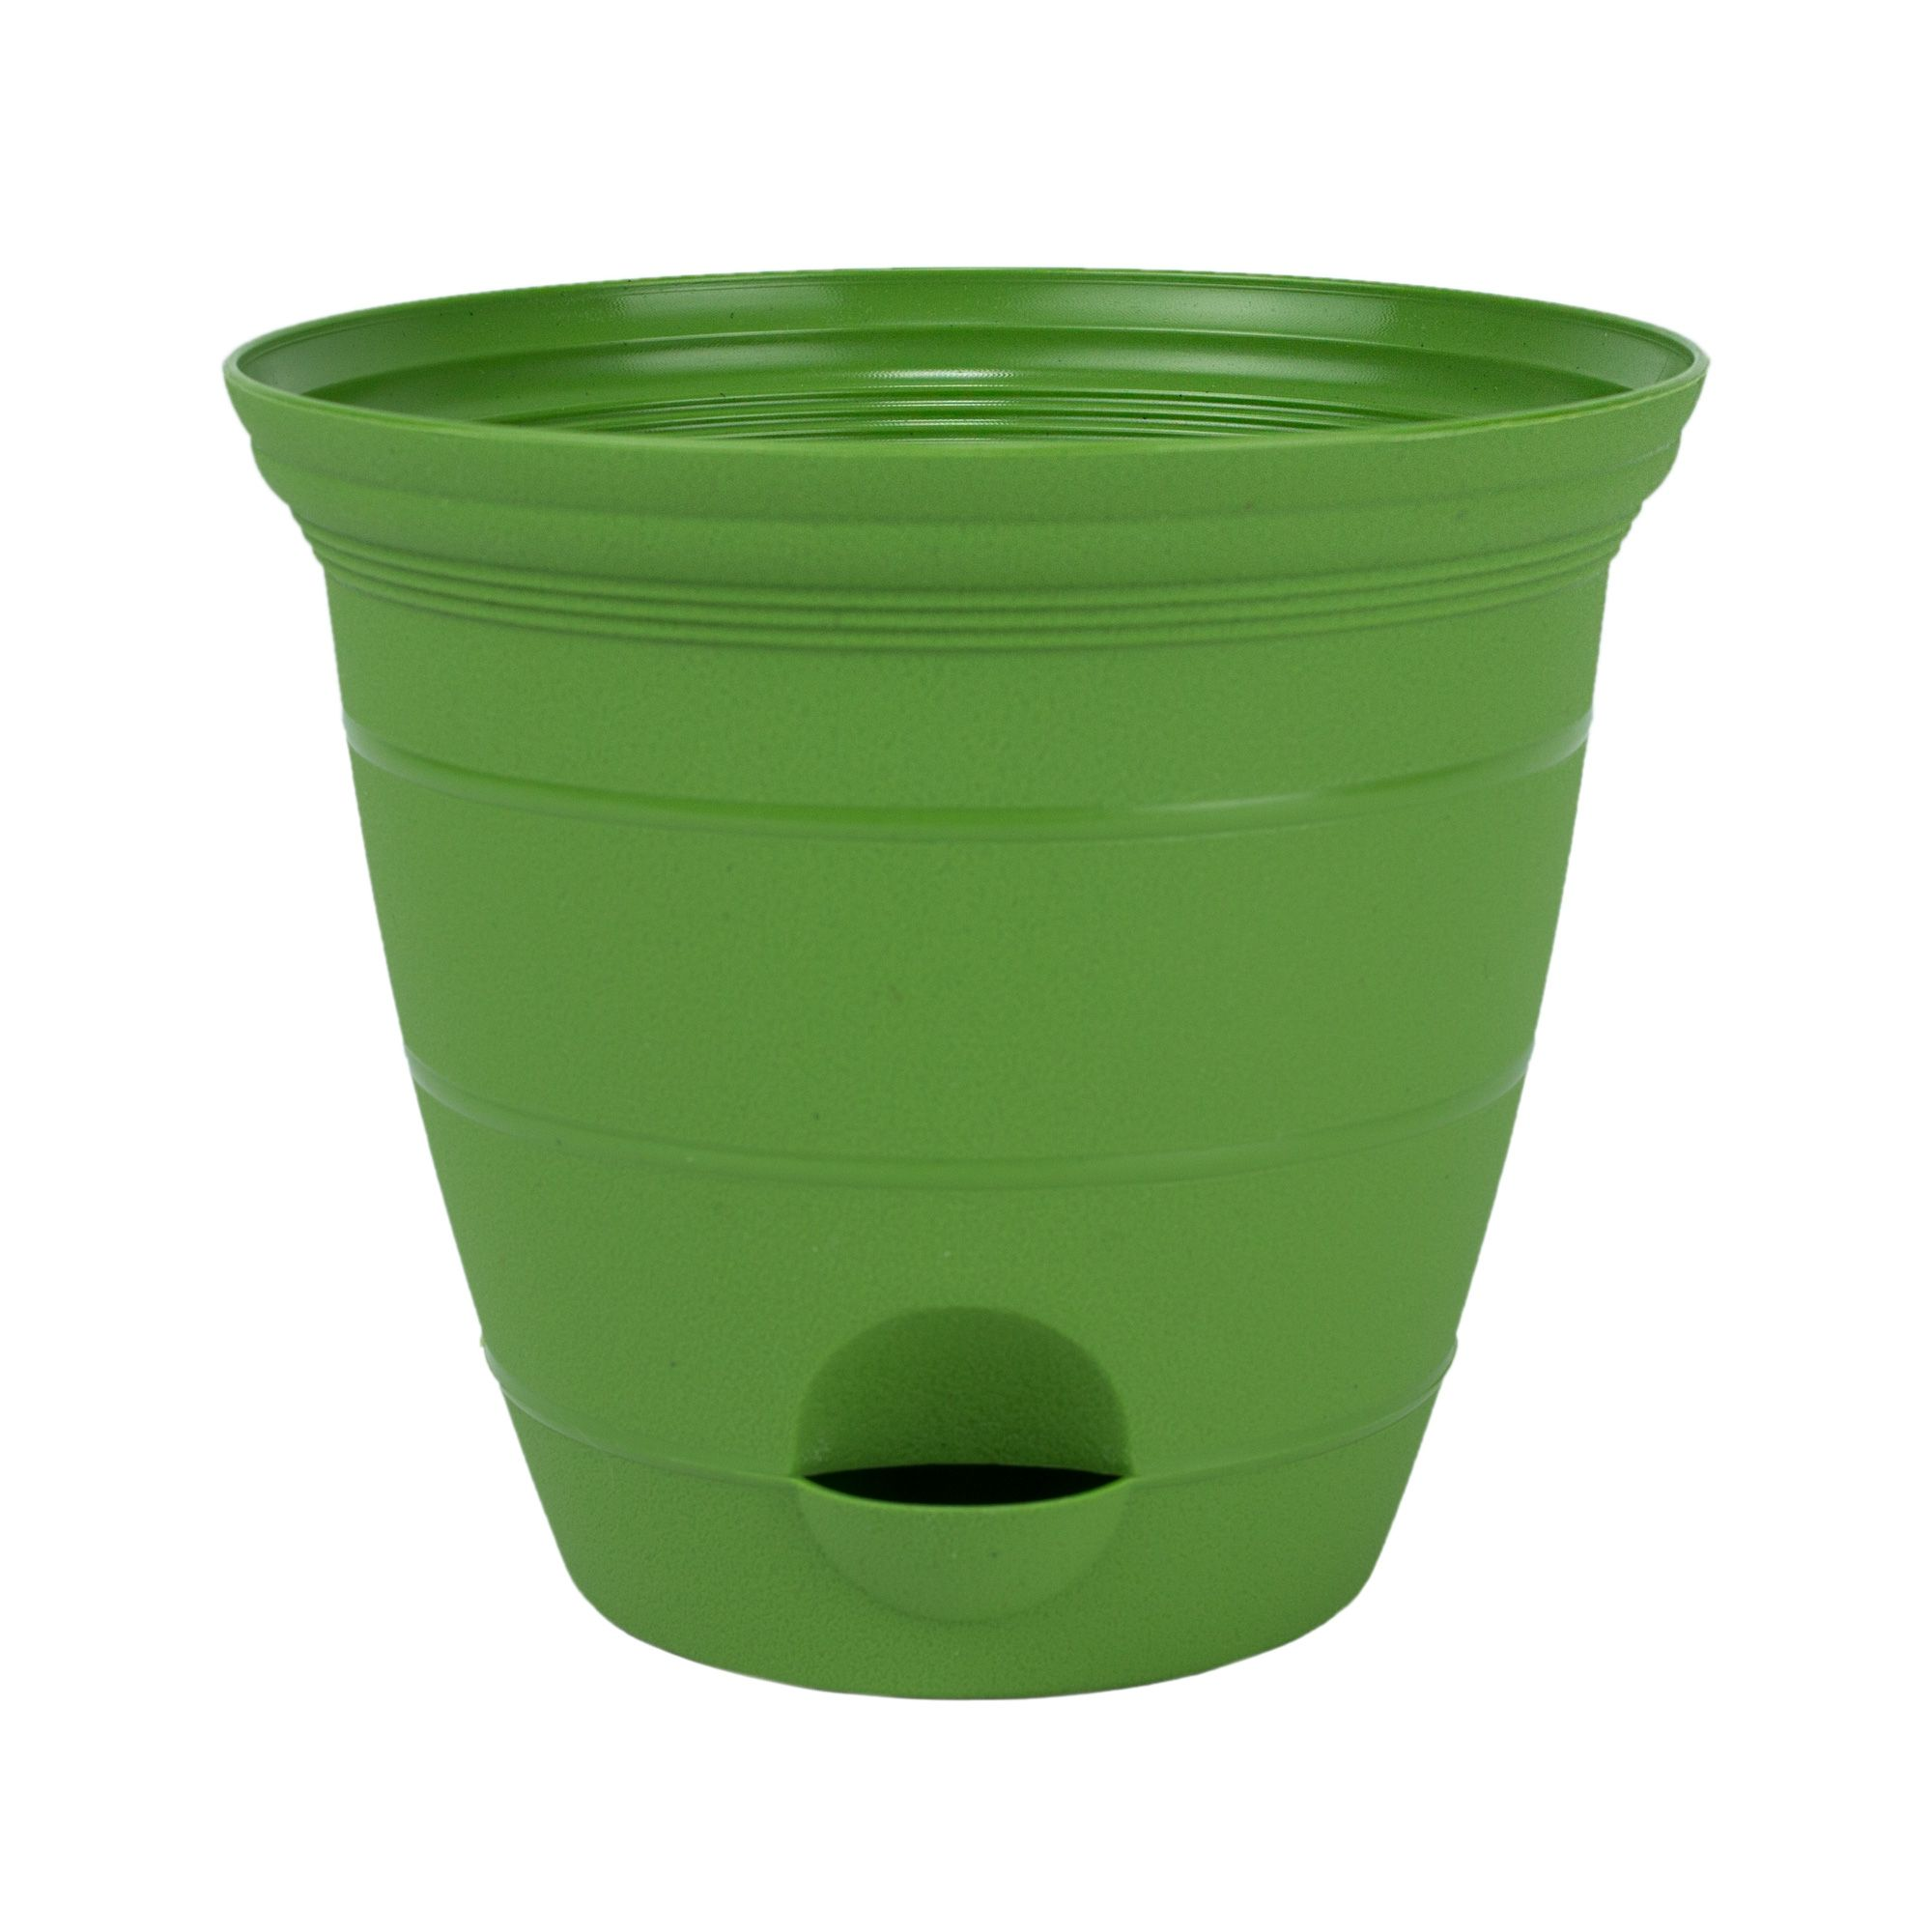 Misco 2 Pack 12 Inch Plastic Self Watering Terra Flower Plant Pot Garden Potted Planter Green Planting Flowers Garden Pots Self Watering